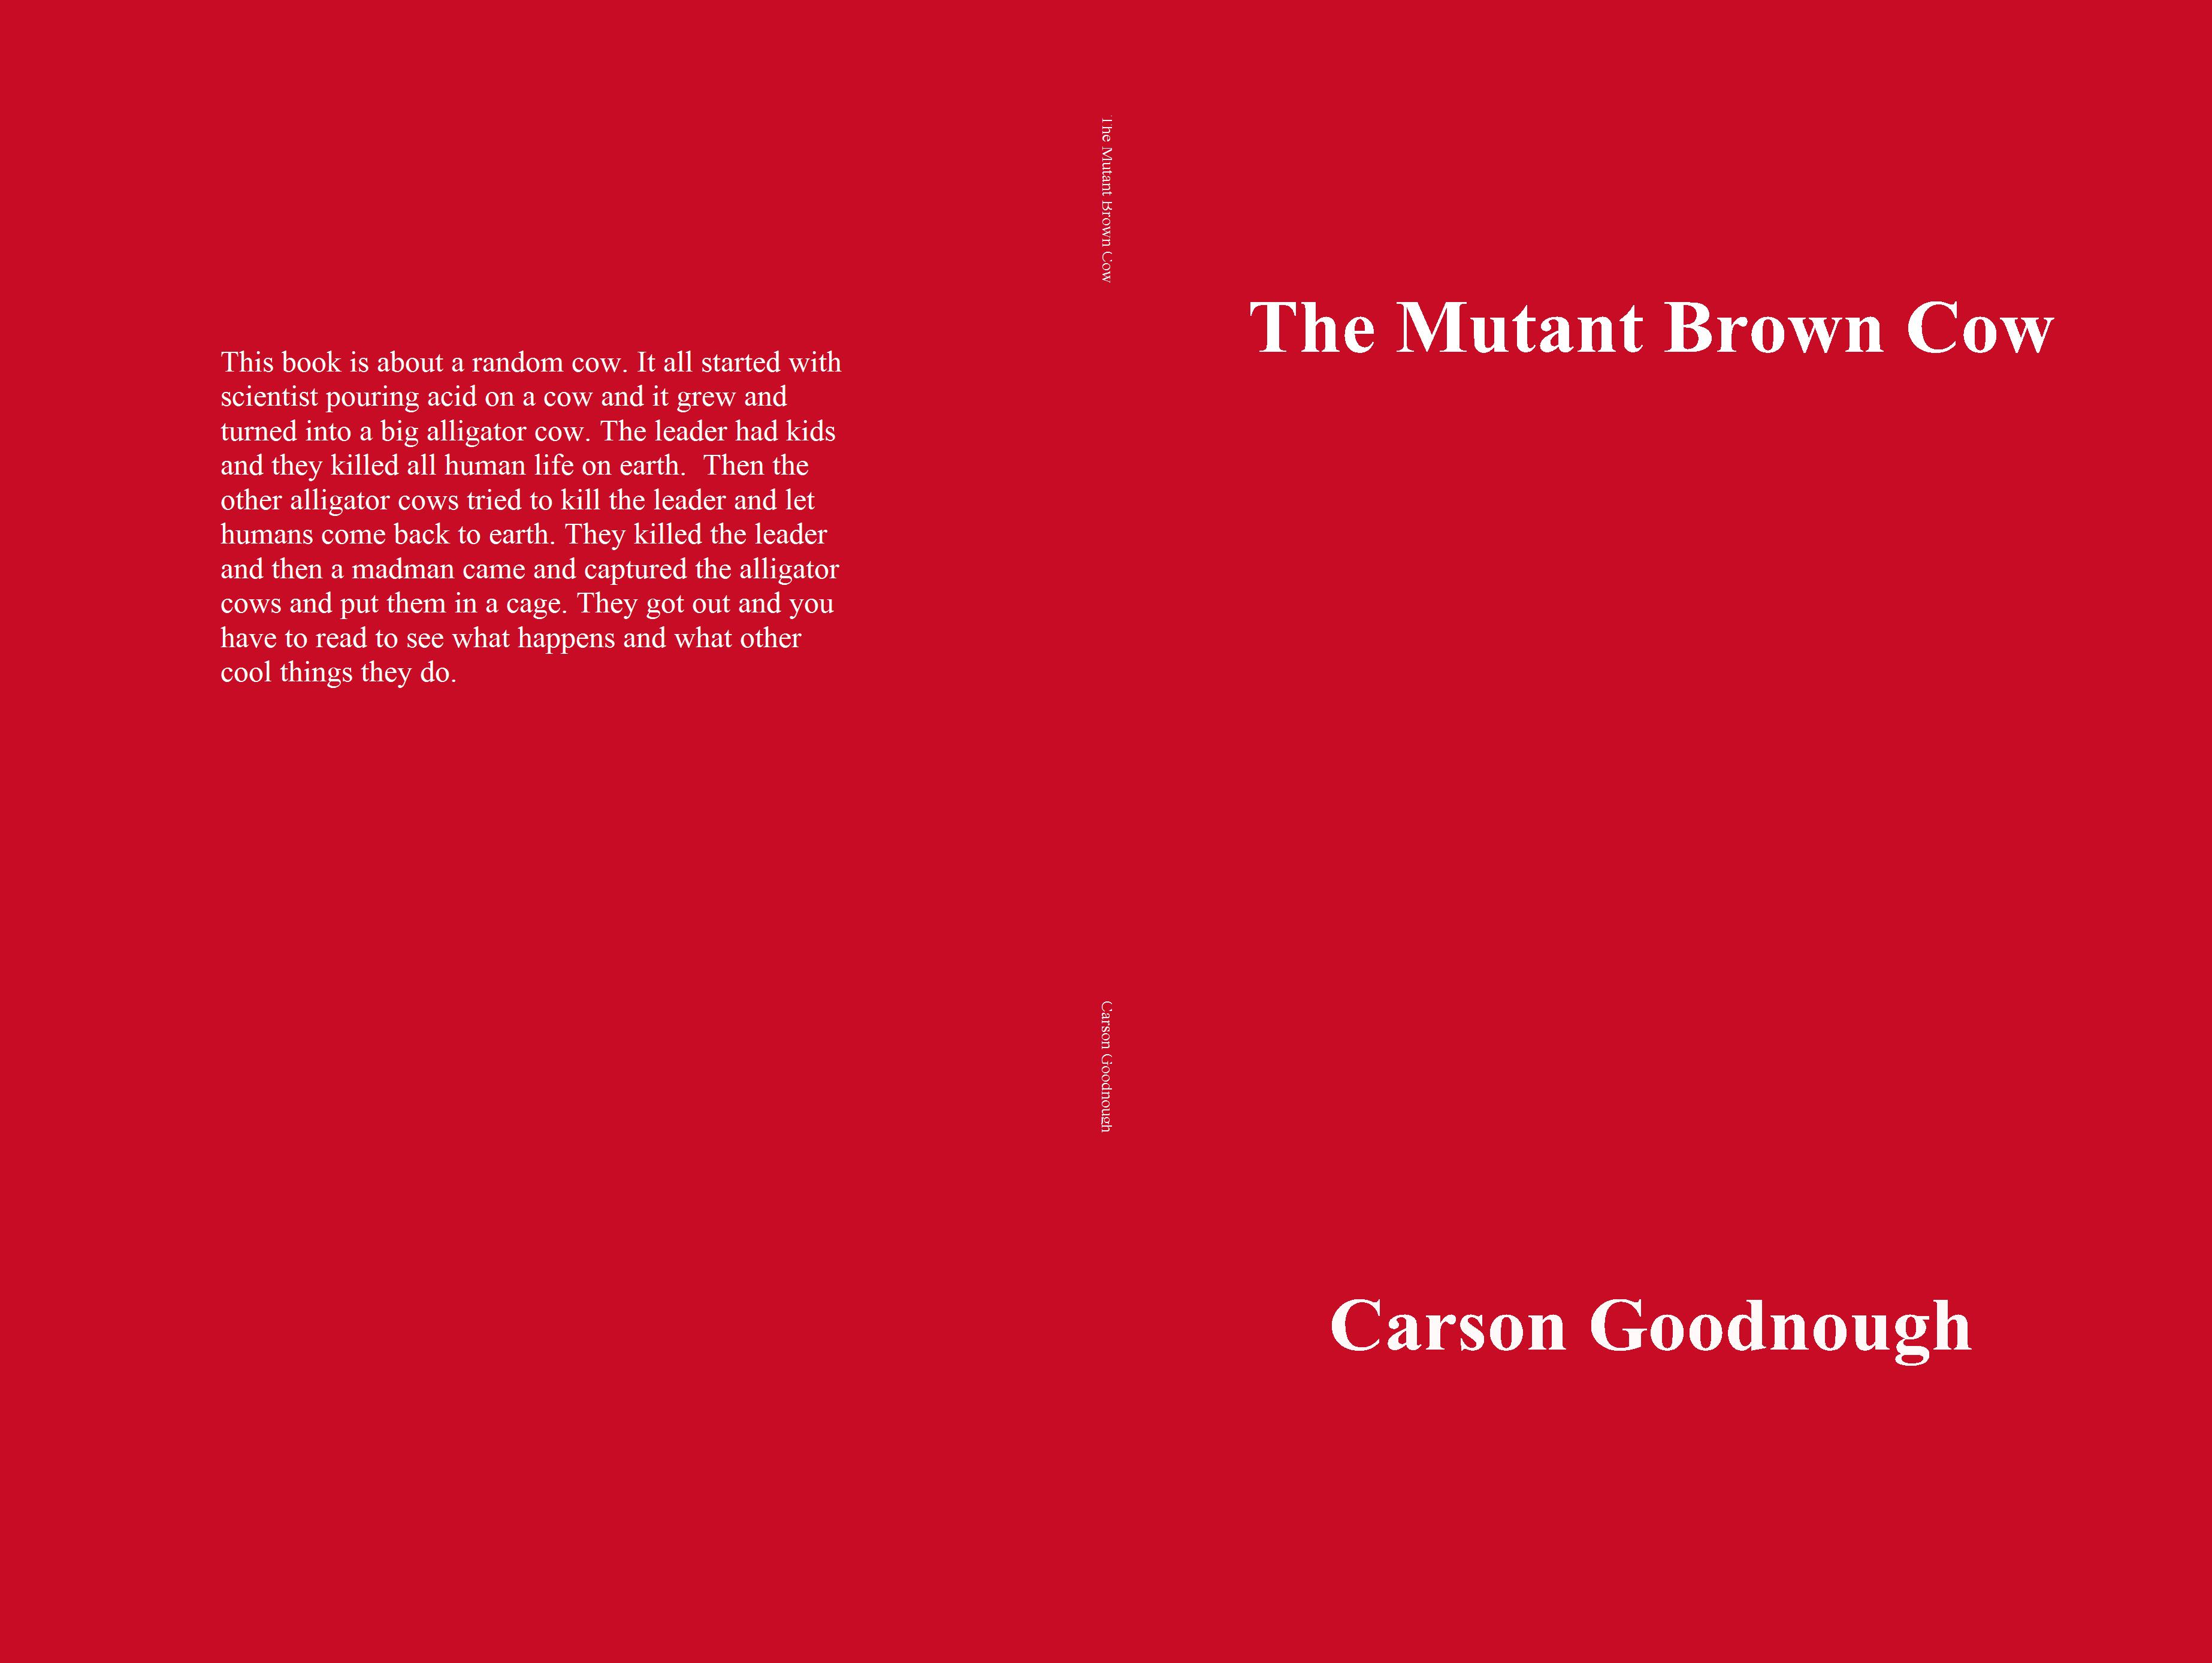 The Mutant Brown Cow cover image